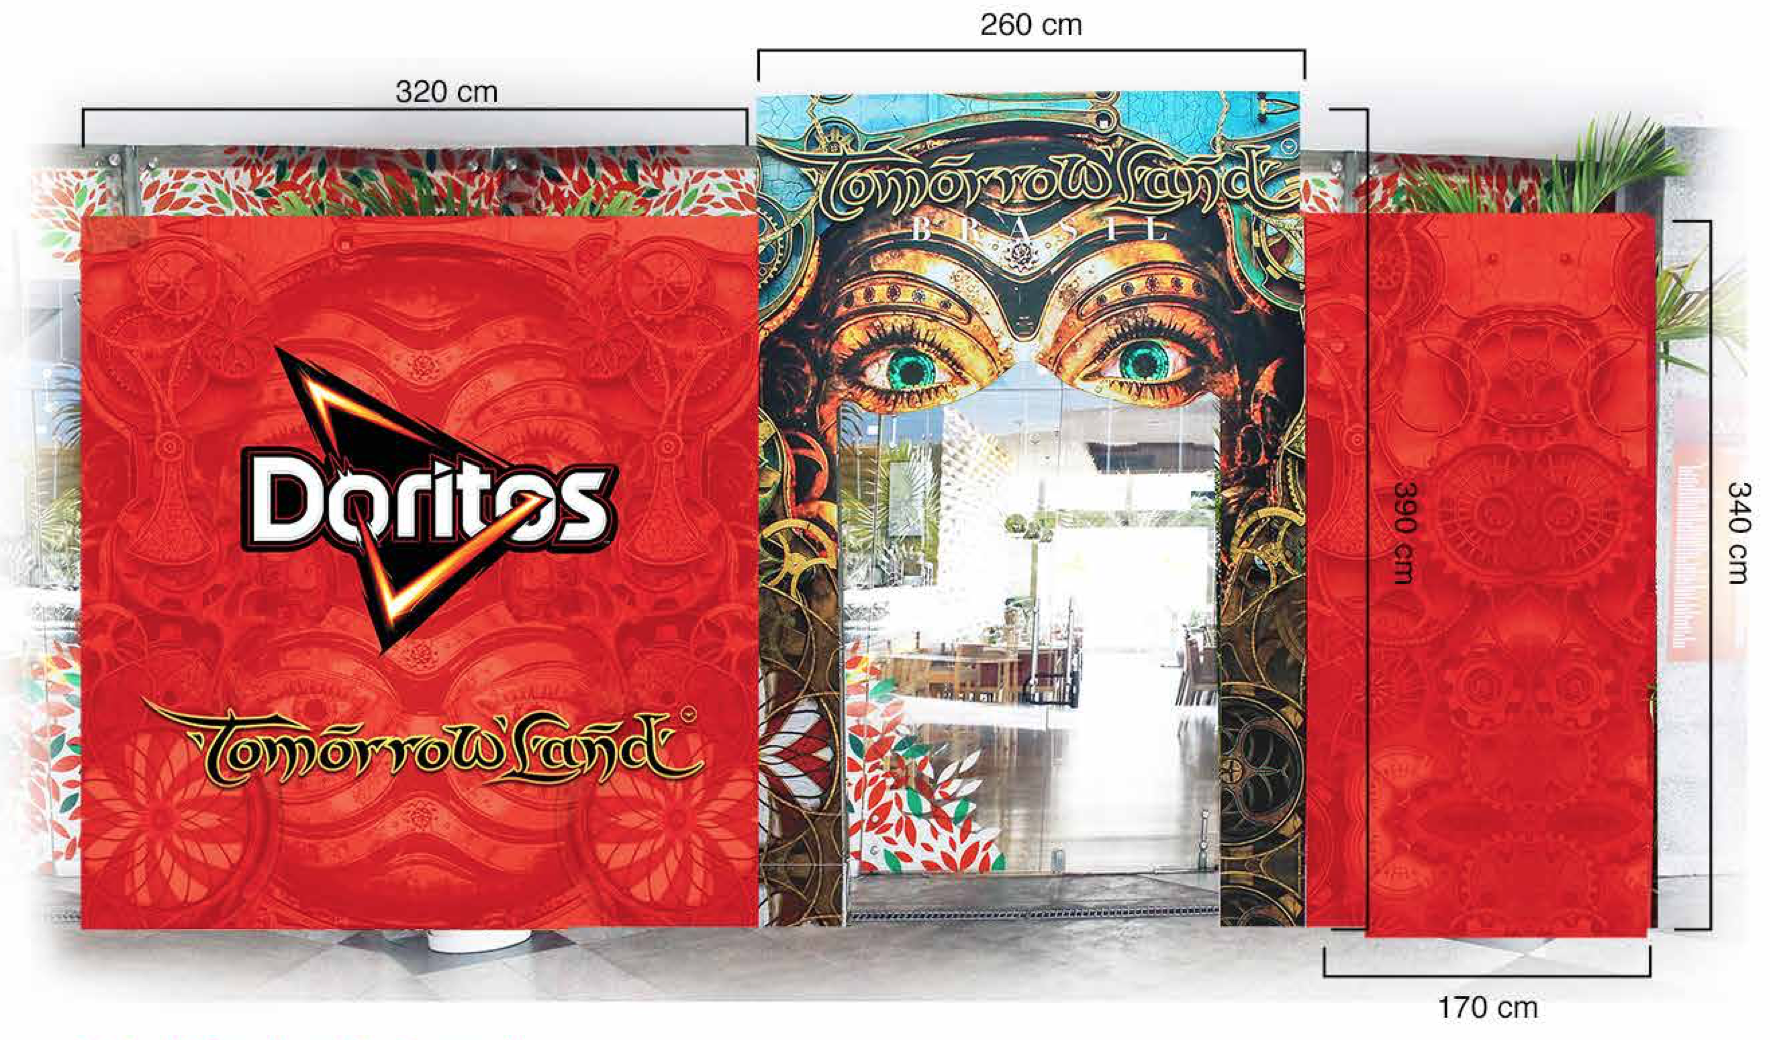 Doritos event artwork design